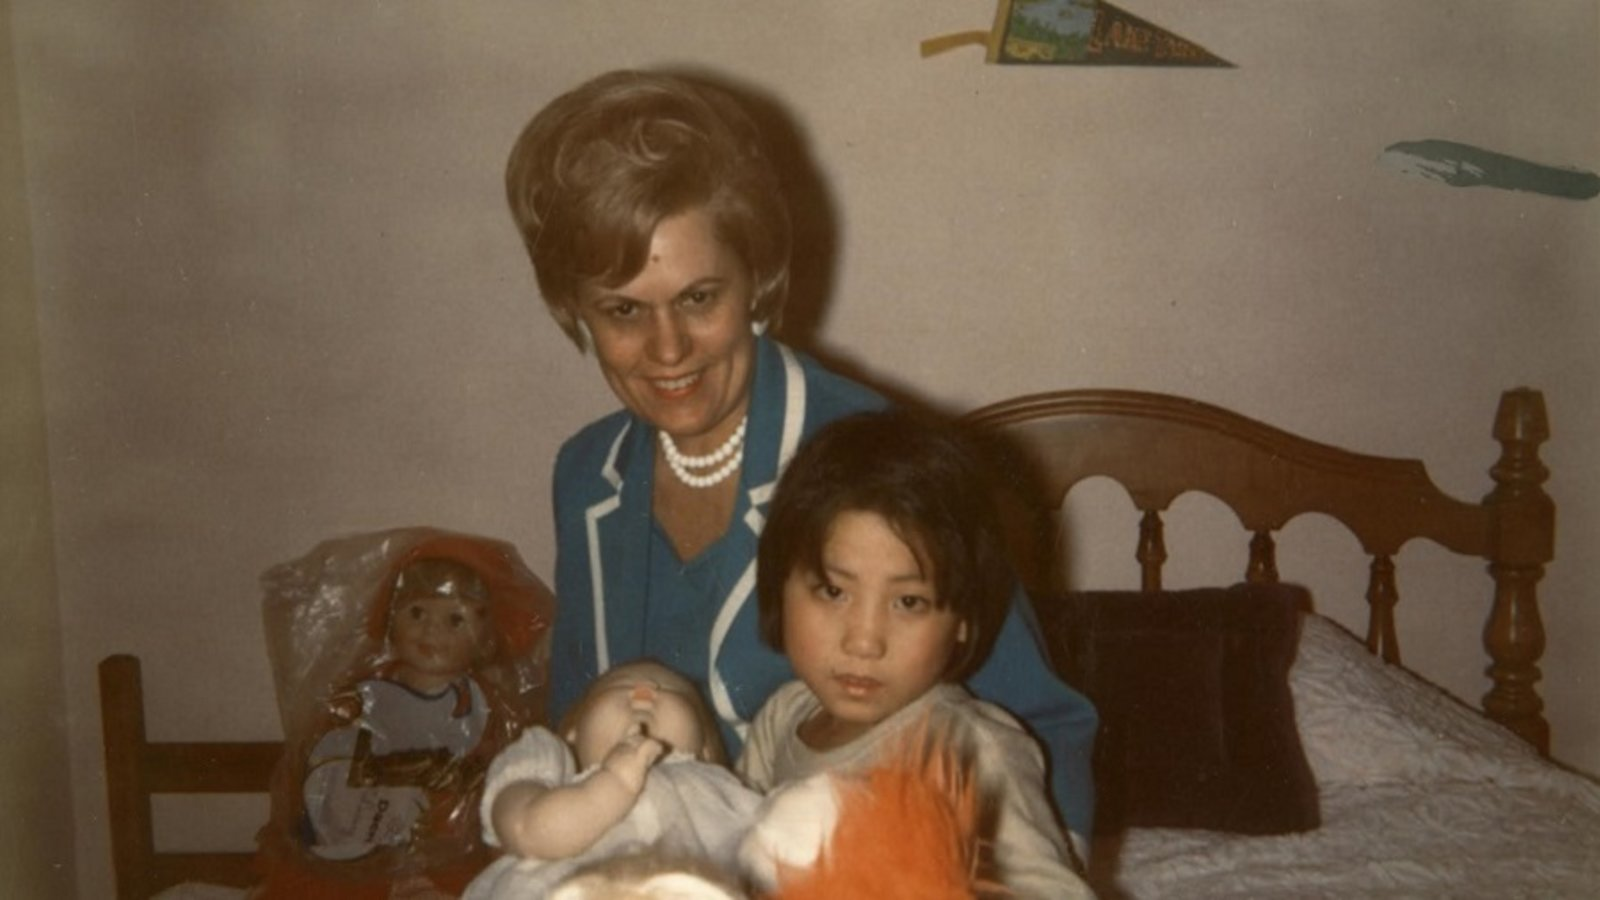 Video still from the film First Person Plural, with a young Korean girl sitting with a white woman on a bed in a child's bedroom